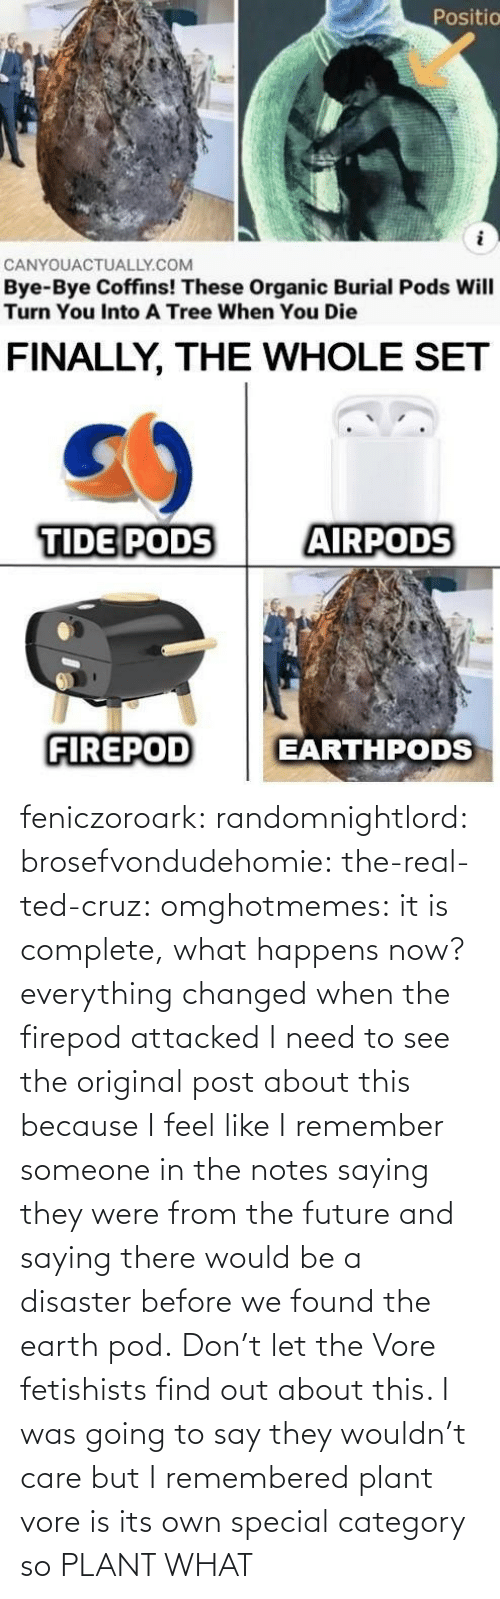 notes: feniczoroark:  randomnightlord:  brosefvondudehomie: the-real-ted-cruz:  omghotmemes: it is complete, what happens now? everything changed when the firepod attacked    I need to see the original post about this because I feel like I remember someone in the notes saying they were from the future and saying there would be a disaster before we found the earth pod.    Don't let the Vore fetishists find out about this.    I was going to say they wouldn't care but I remembered plant vore is its own special category so   PLANT WHAT